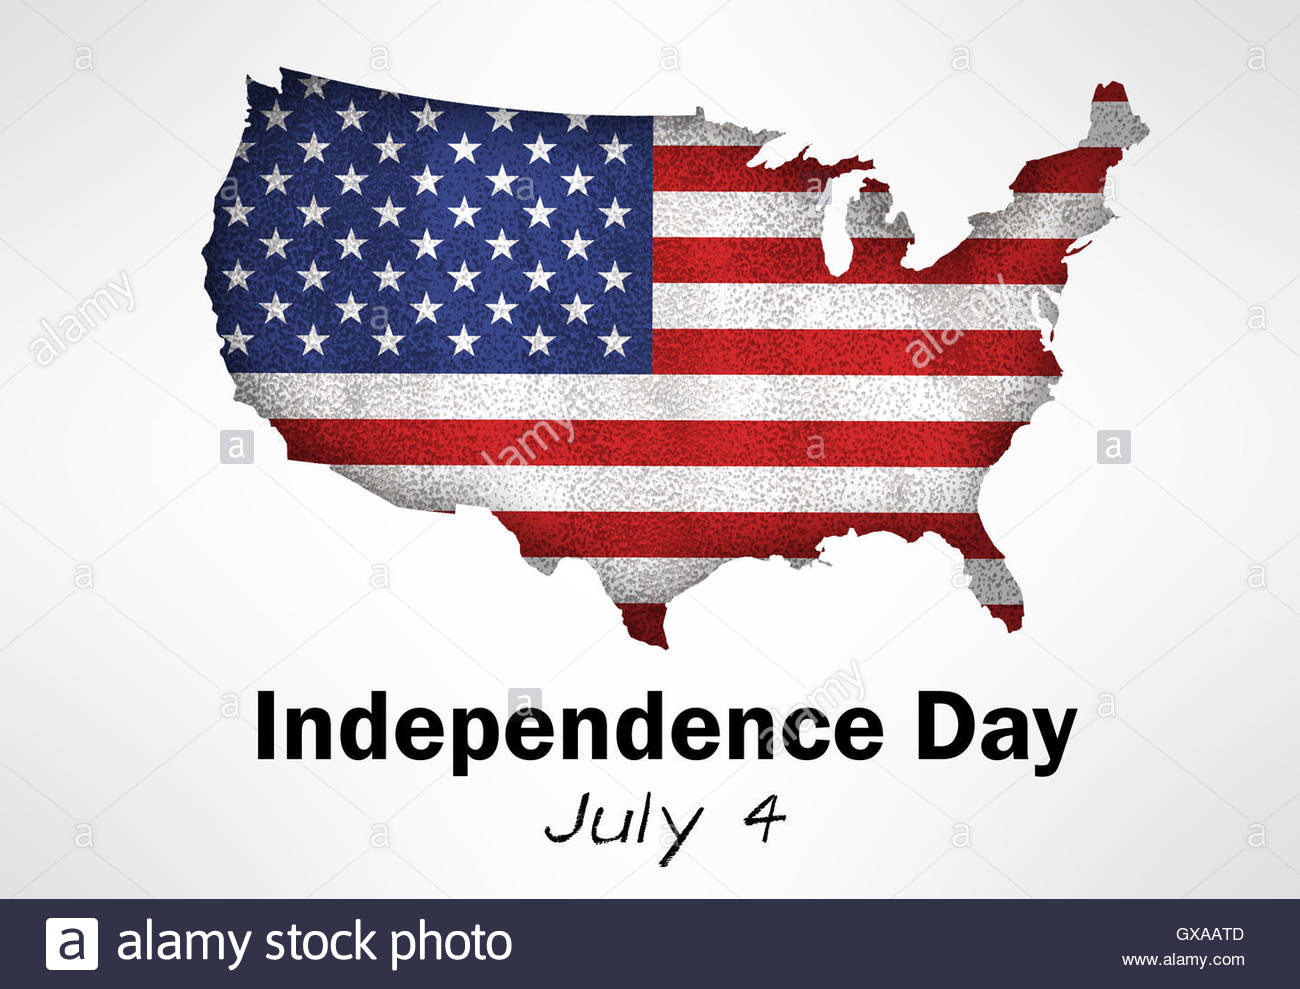 Independence Day - American federal holiday map flag illustration - Stock Image